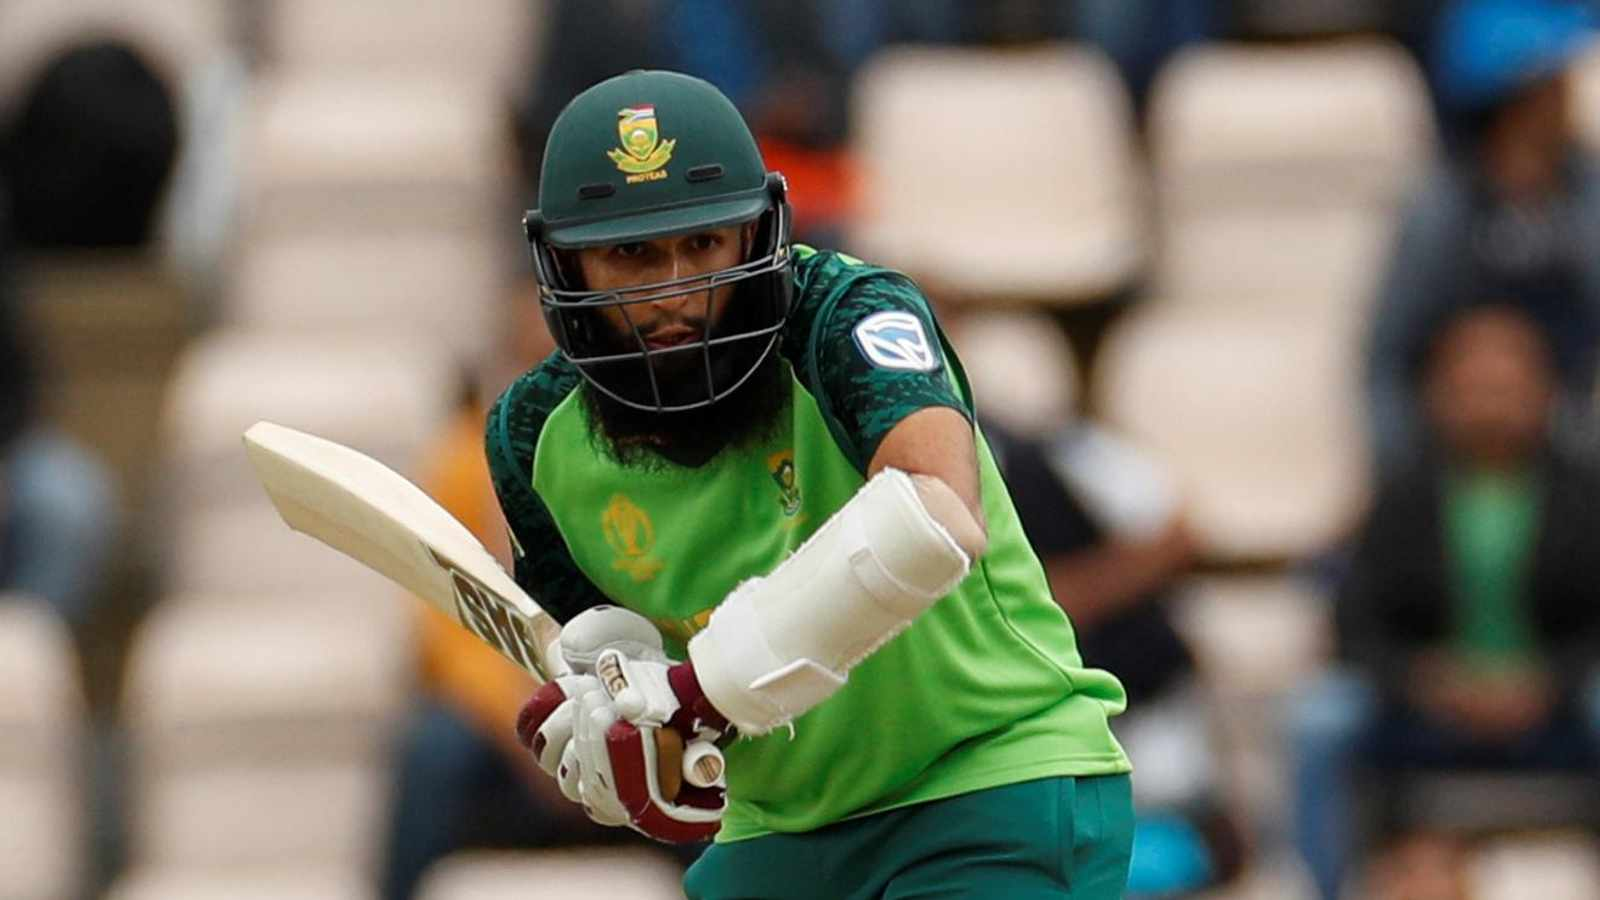 'Amla could do better'